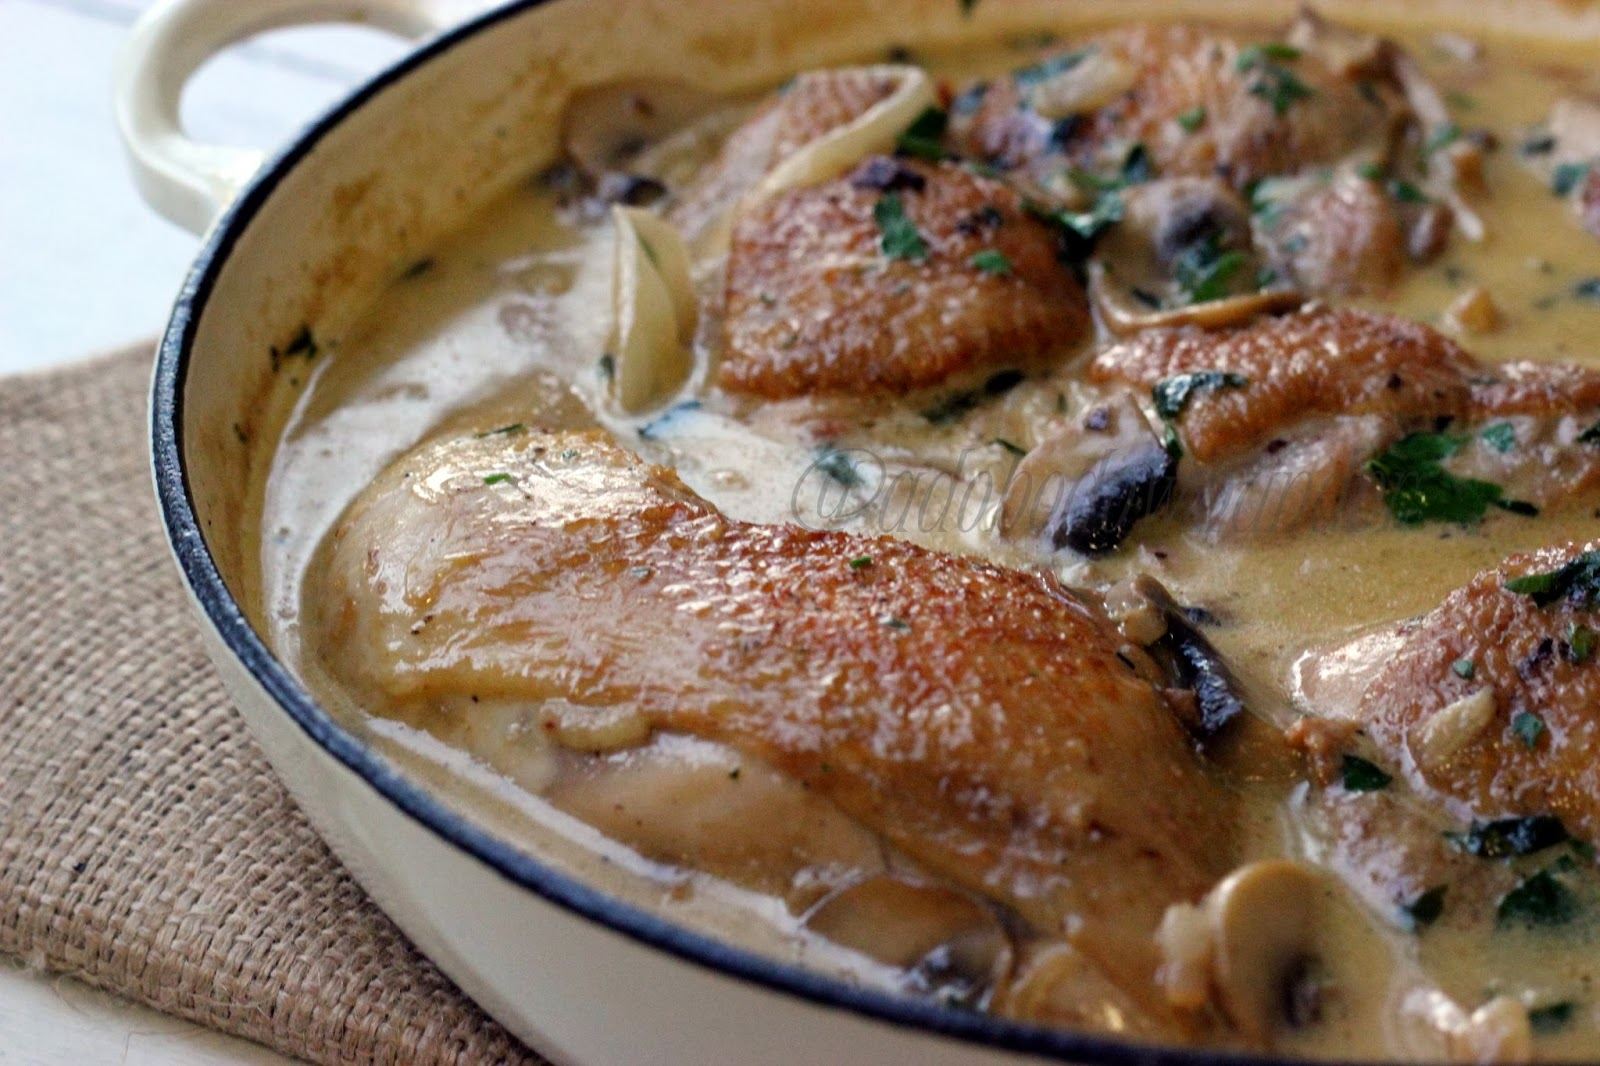 ... under: Coq au Verdelho (chicken with mushrooms in white wine sauce